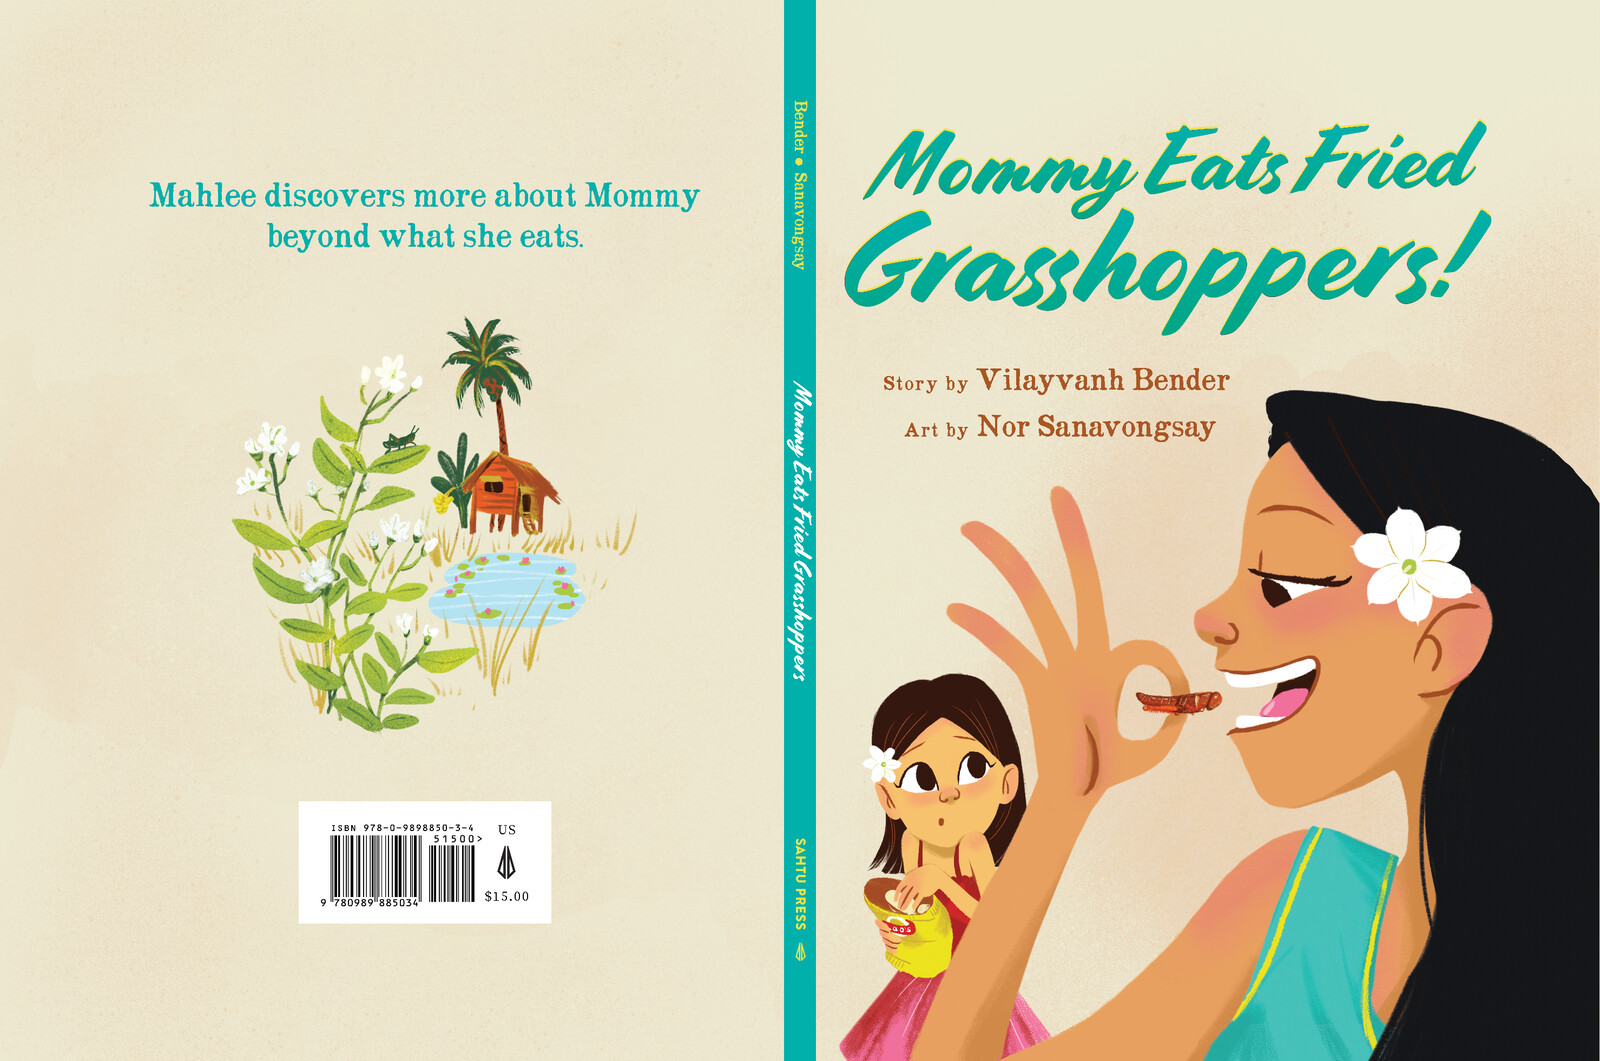 Mommy Eats Fried Grasshoppers Illustrated by Nor Sanavongsay